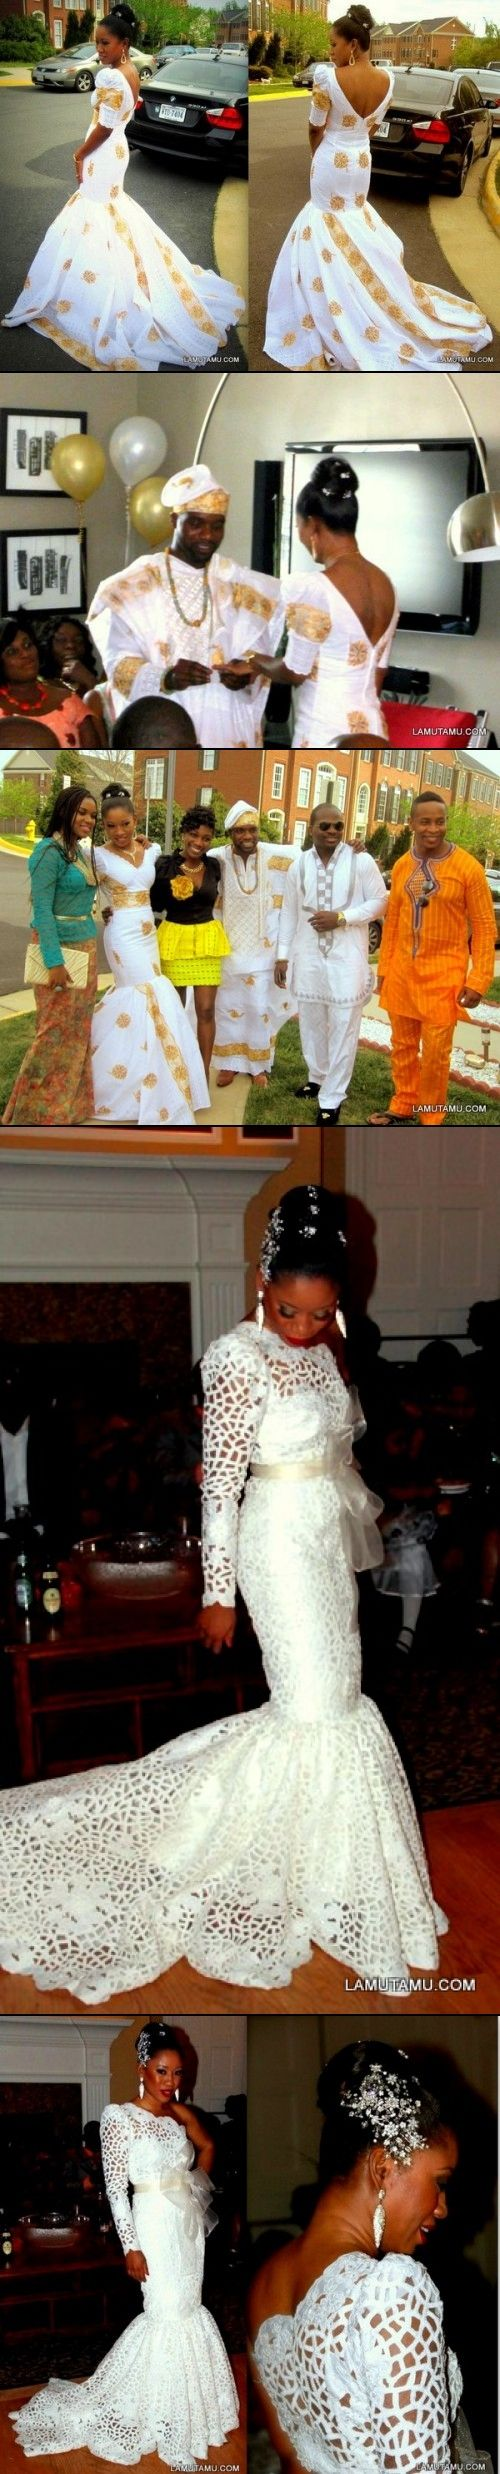 African Bride - engagement party dress, wedding dress